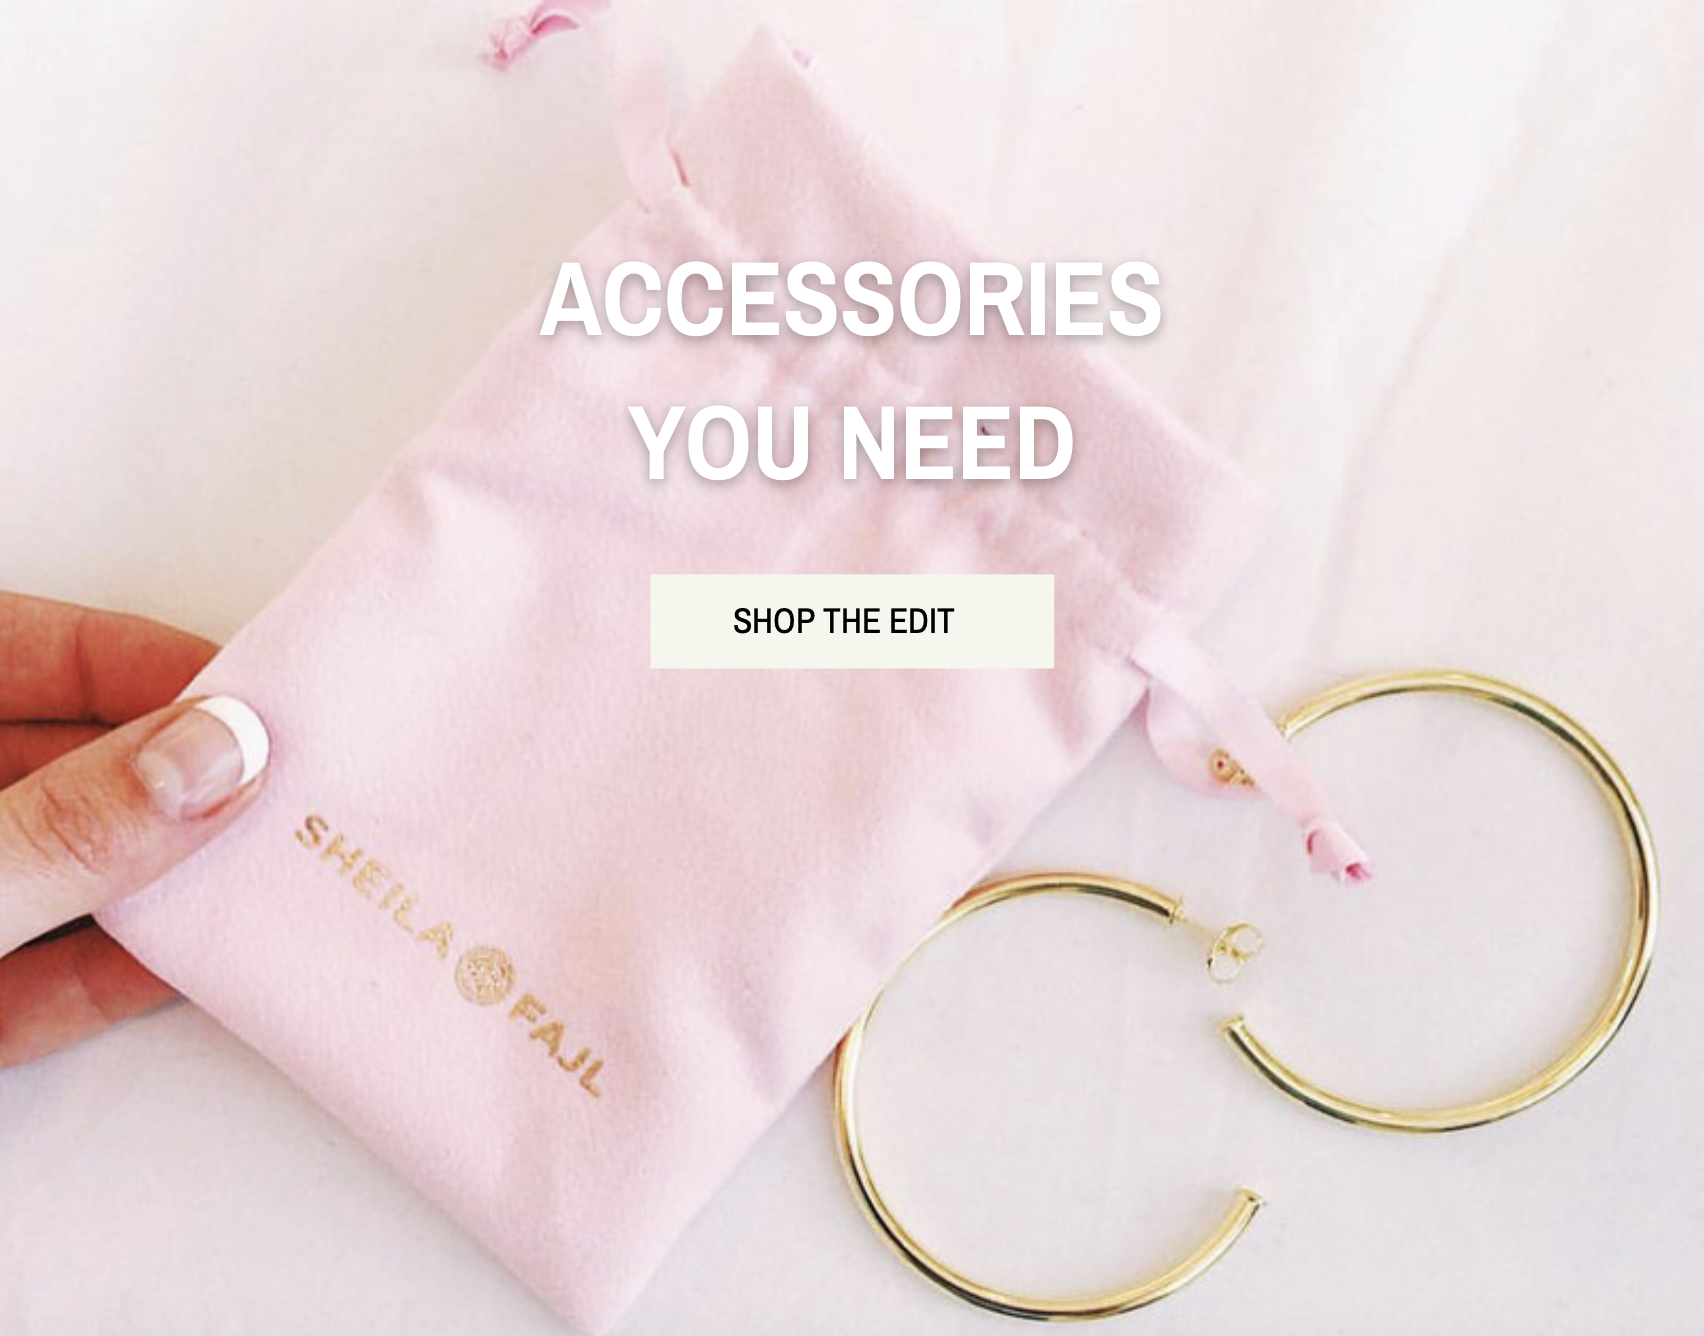 ACCESSORIES YOU NEED